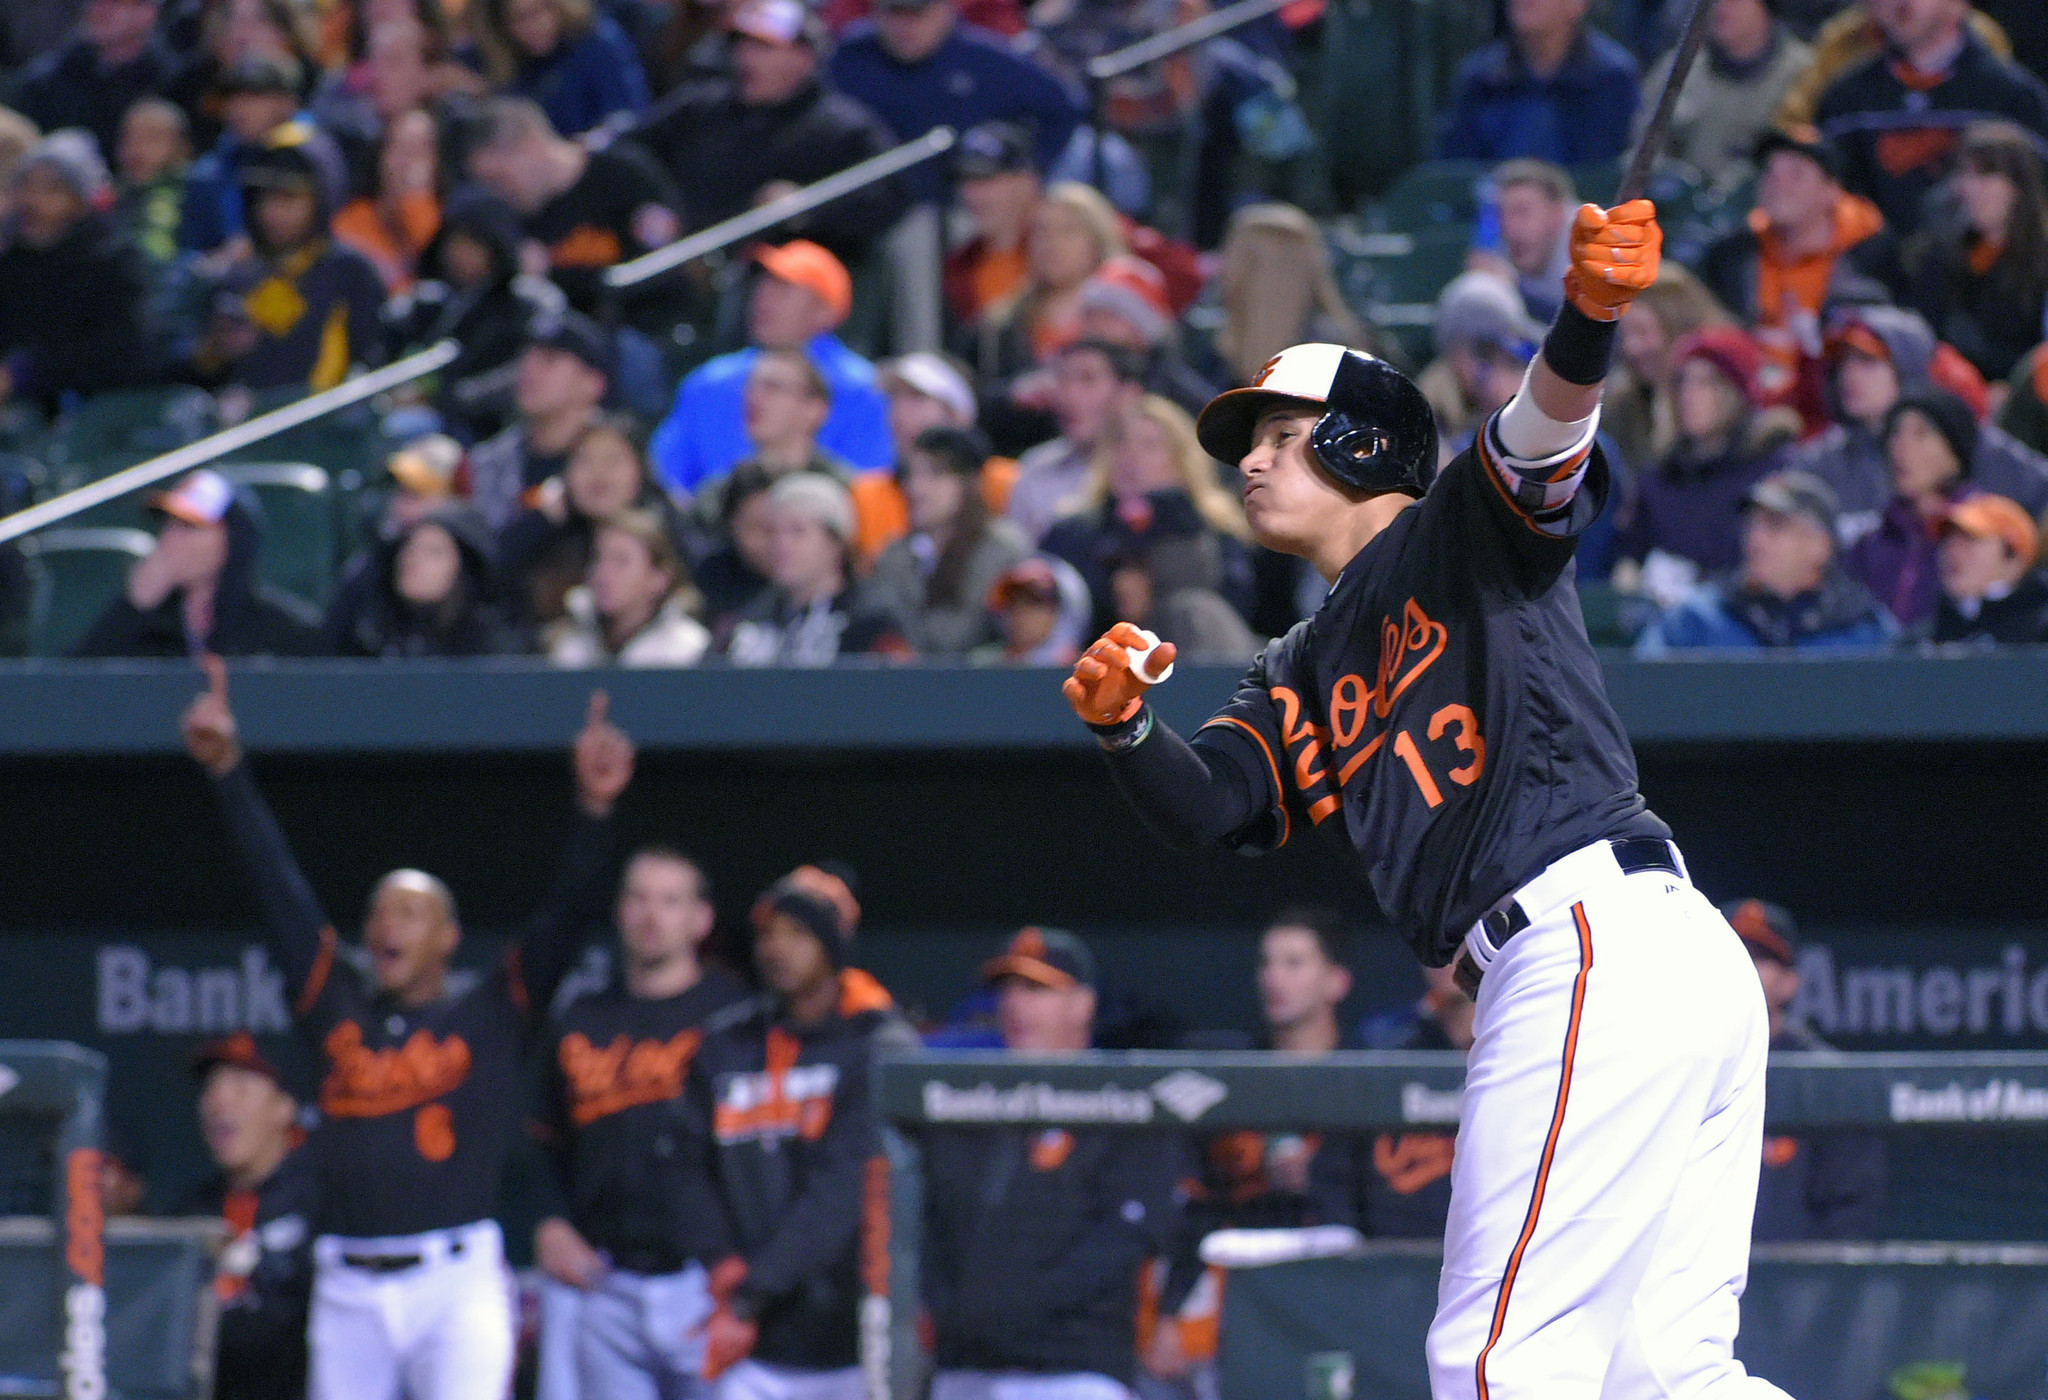 Bal-orioles-manny-machado-to-represent-the-dominican-republic-in-next-year-s-world-baseball-classic-20160427